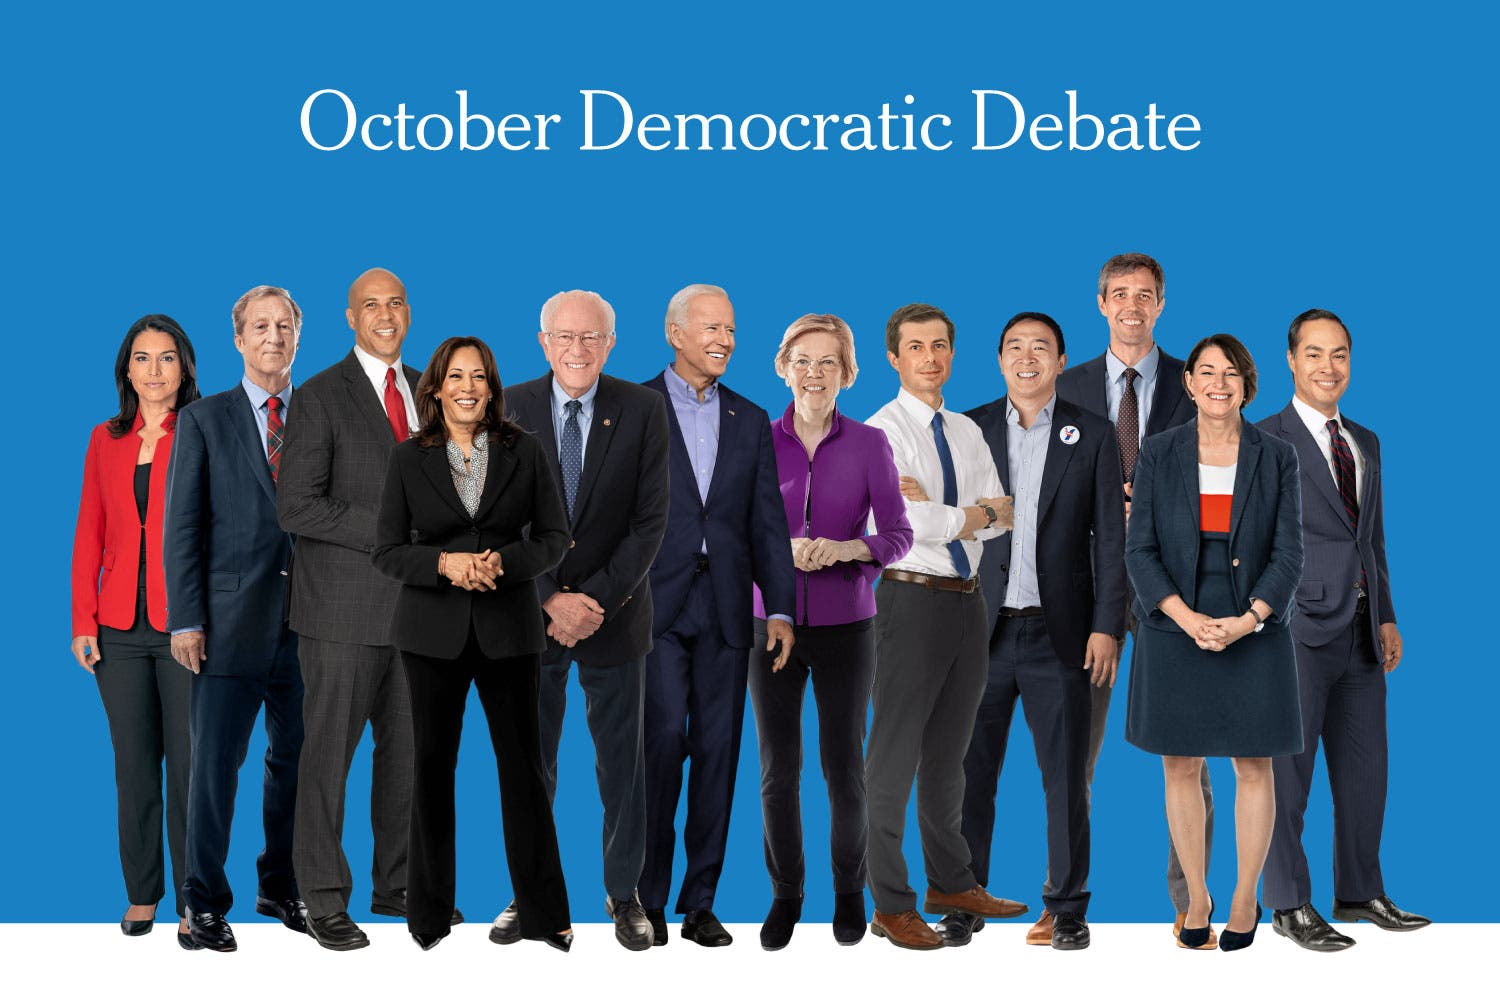 democratic debate promo october 2019 12 candidates